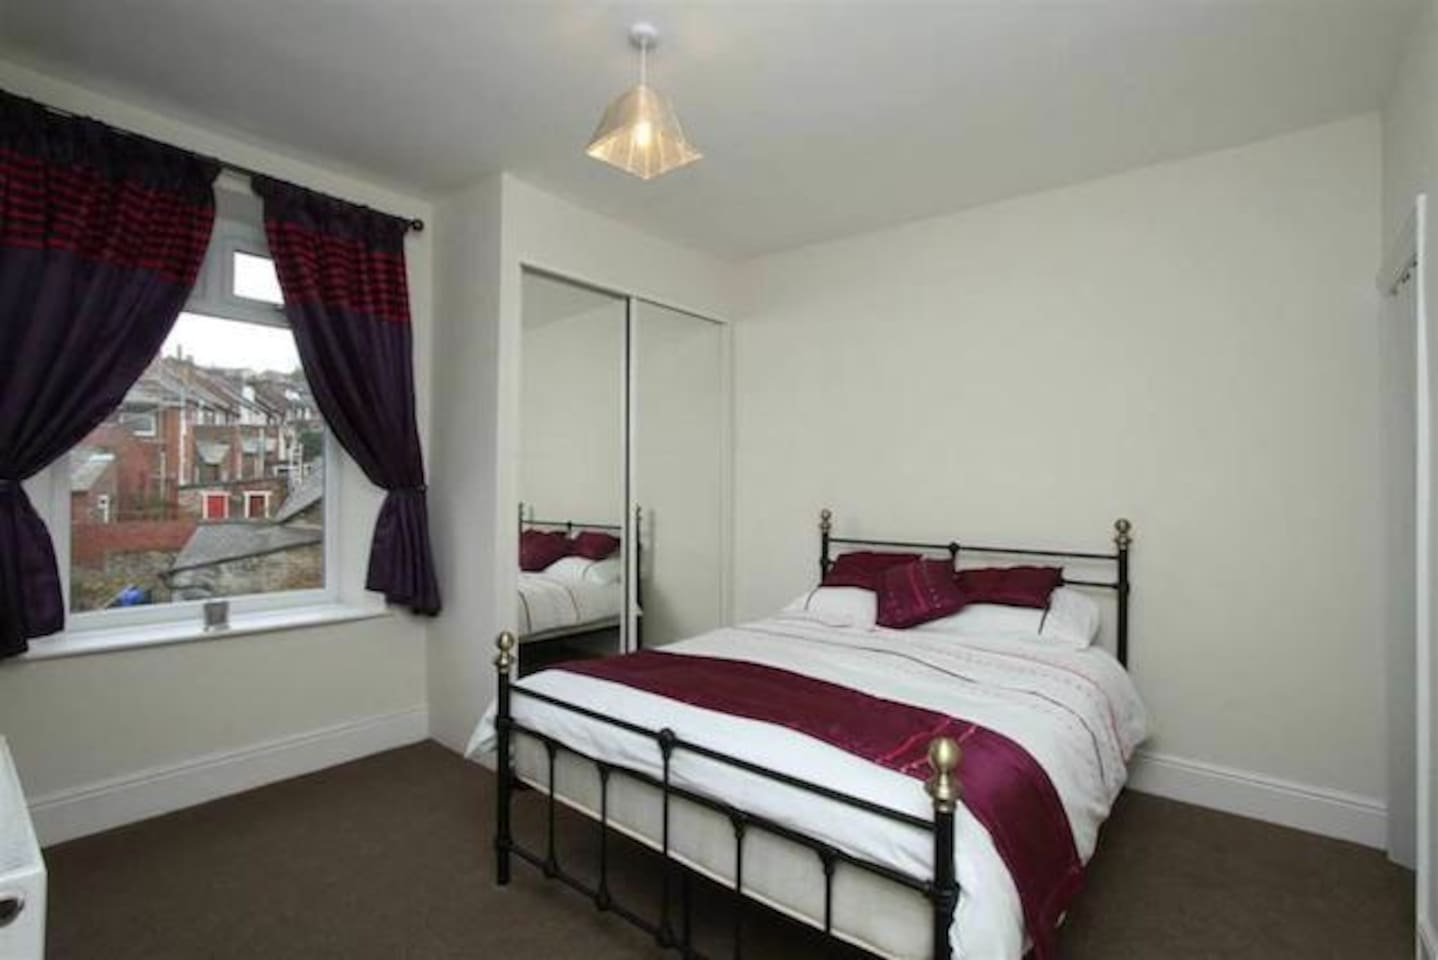 Comfortable double bed, large wardrobe, windows which can be opened, radiator connected to central heating system.